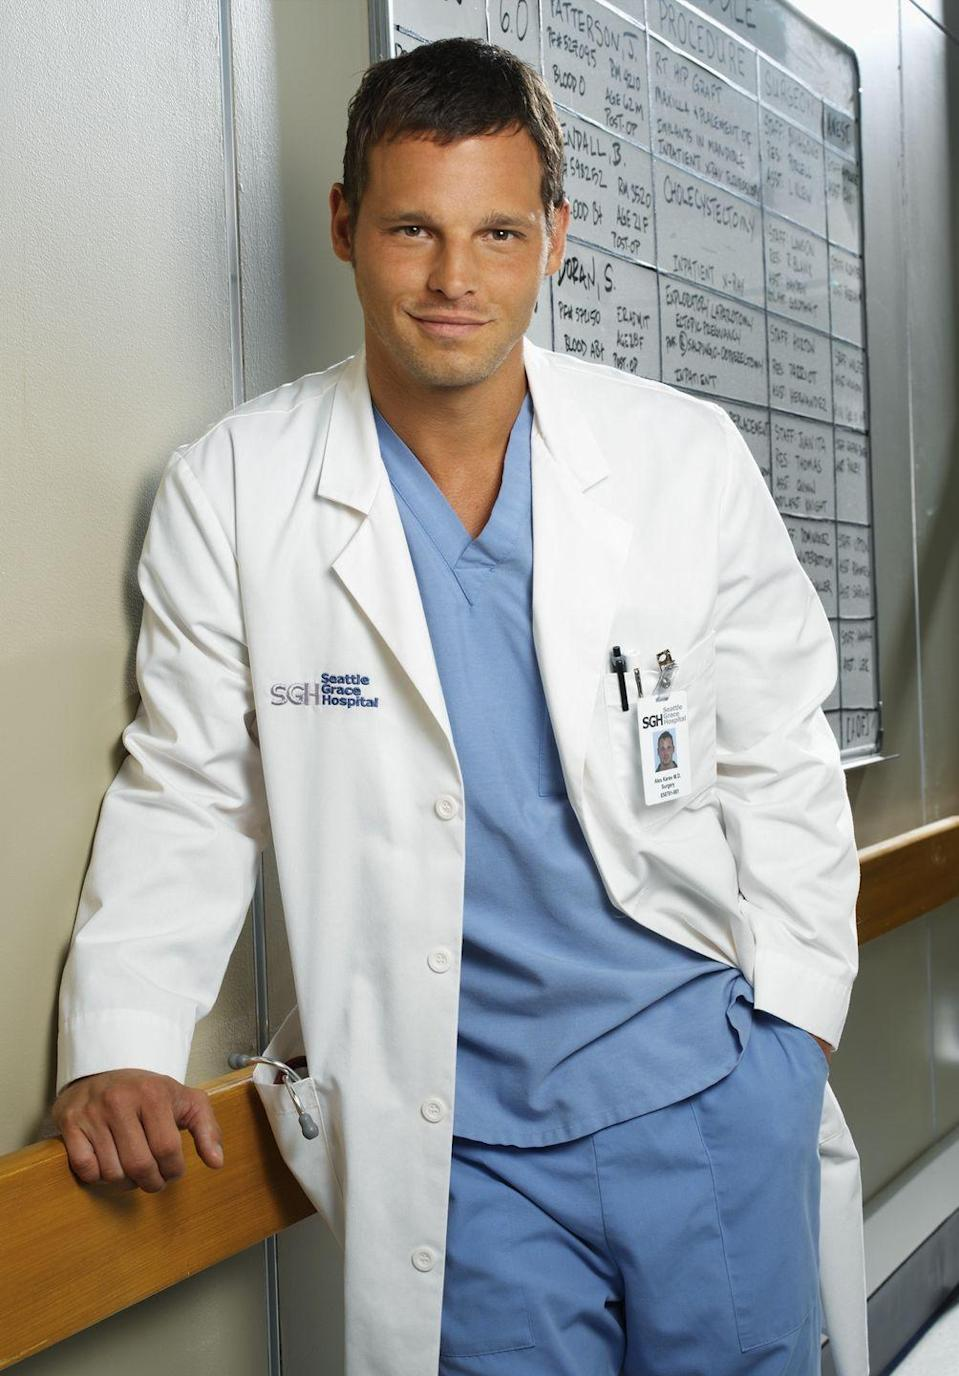 """<p>Justin Chambers was brought on after the pilot episode. """"The role of Dr. Karev...they shot the pilot before I came on,"""" <a href=""""https://www.youtube.com/watch?v=TctdVWdznm8"""" rel=""""nofollow noopener"""" target=""""_blank"""" data-ylk=""""slk:he said"""" class=""""link rapid-noclick-resp"""">he said</a>. """"The character wasn't even created yet, I don't think. They sent the pilot to New York where I live and I saw it and loved it and I went out to L.A. to try to win the part and auditioned and got the role. So that's how Alex came about."""" </p>"""